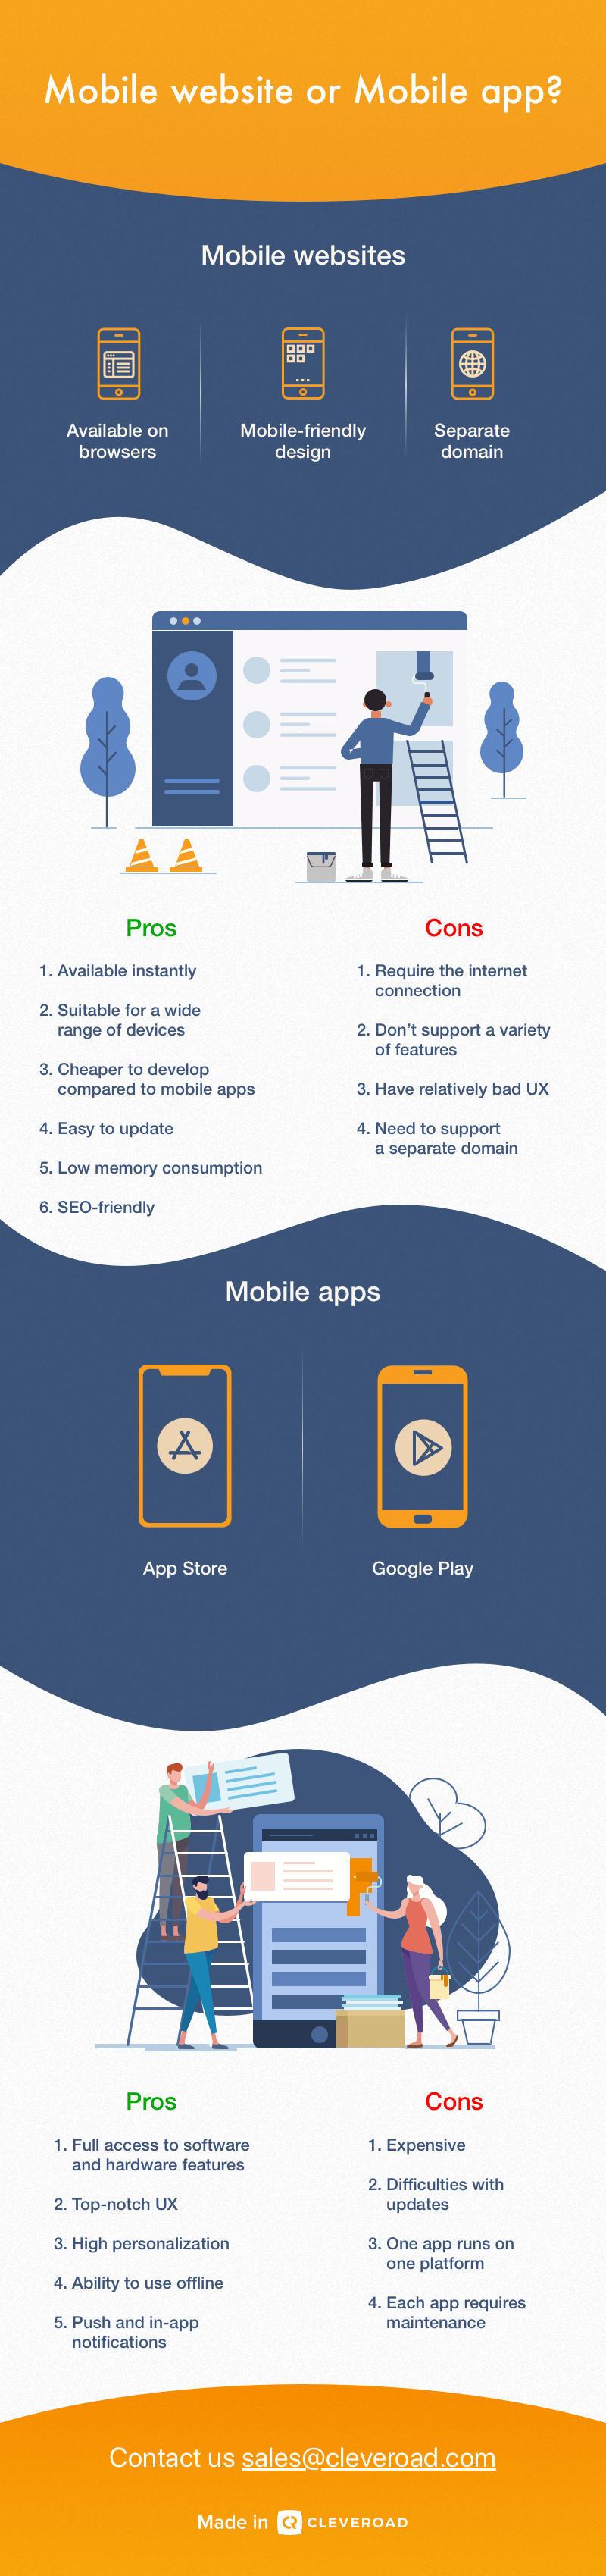 Mobile app vs. mobile website comparison on a comprehensive infographic